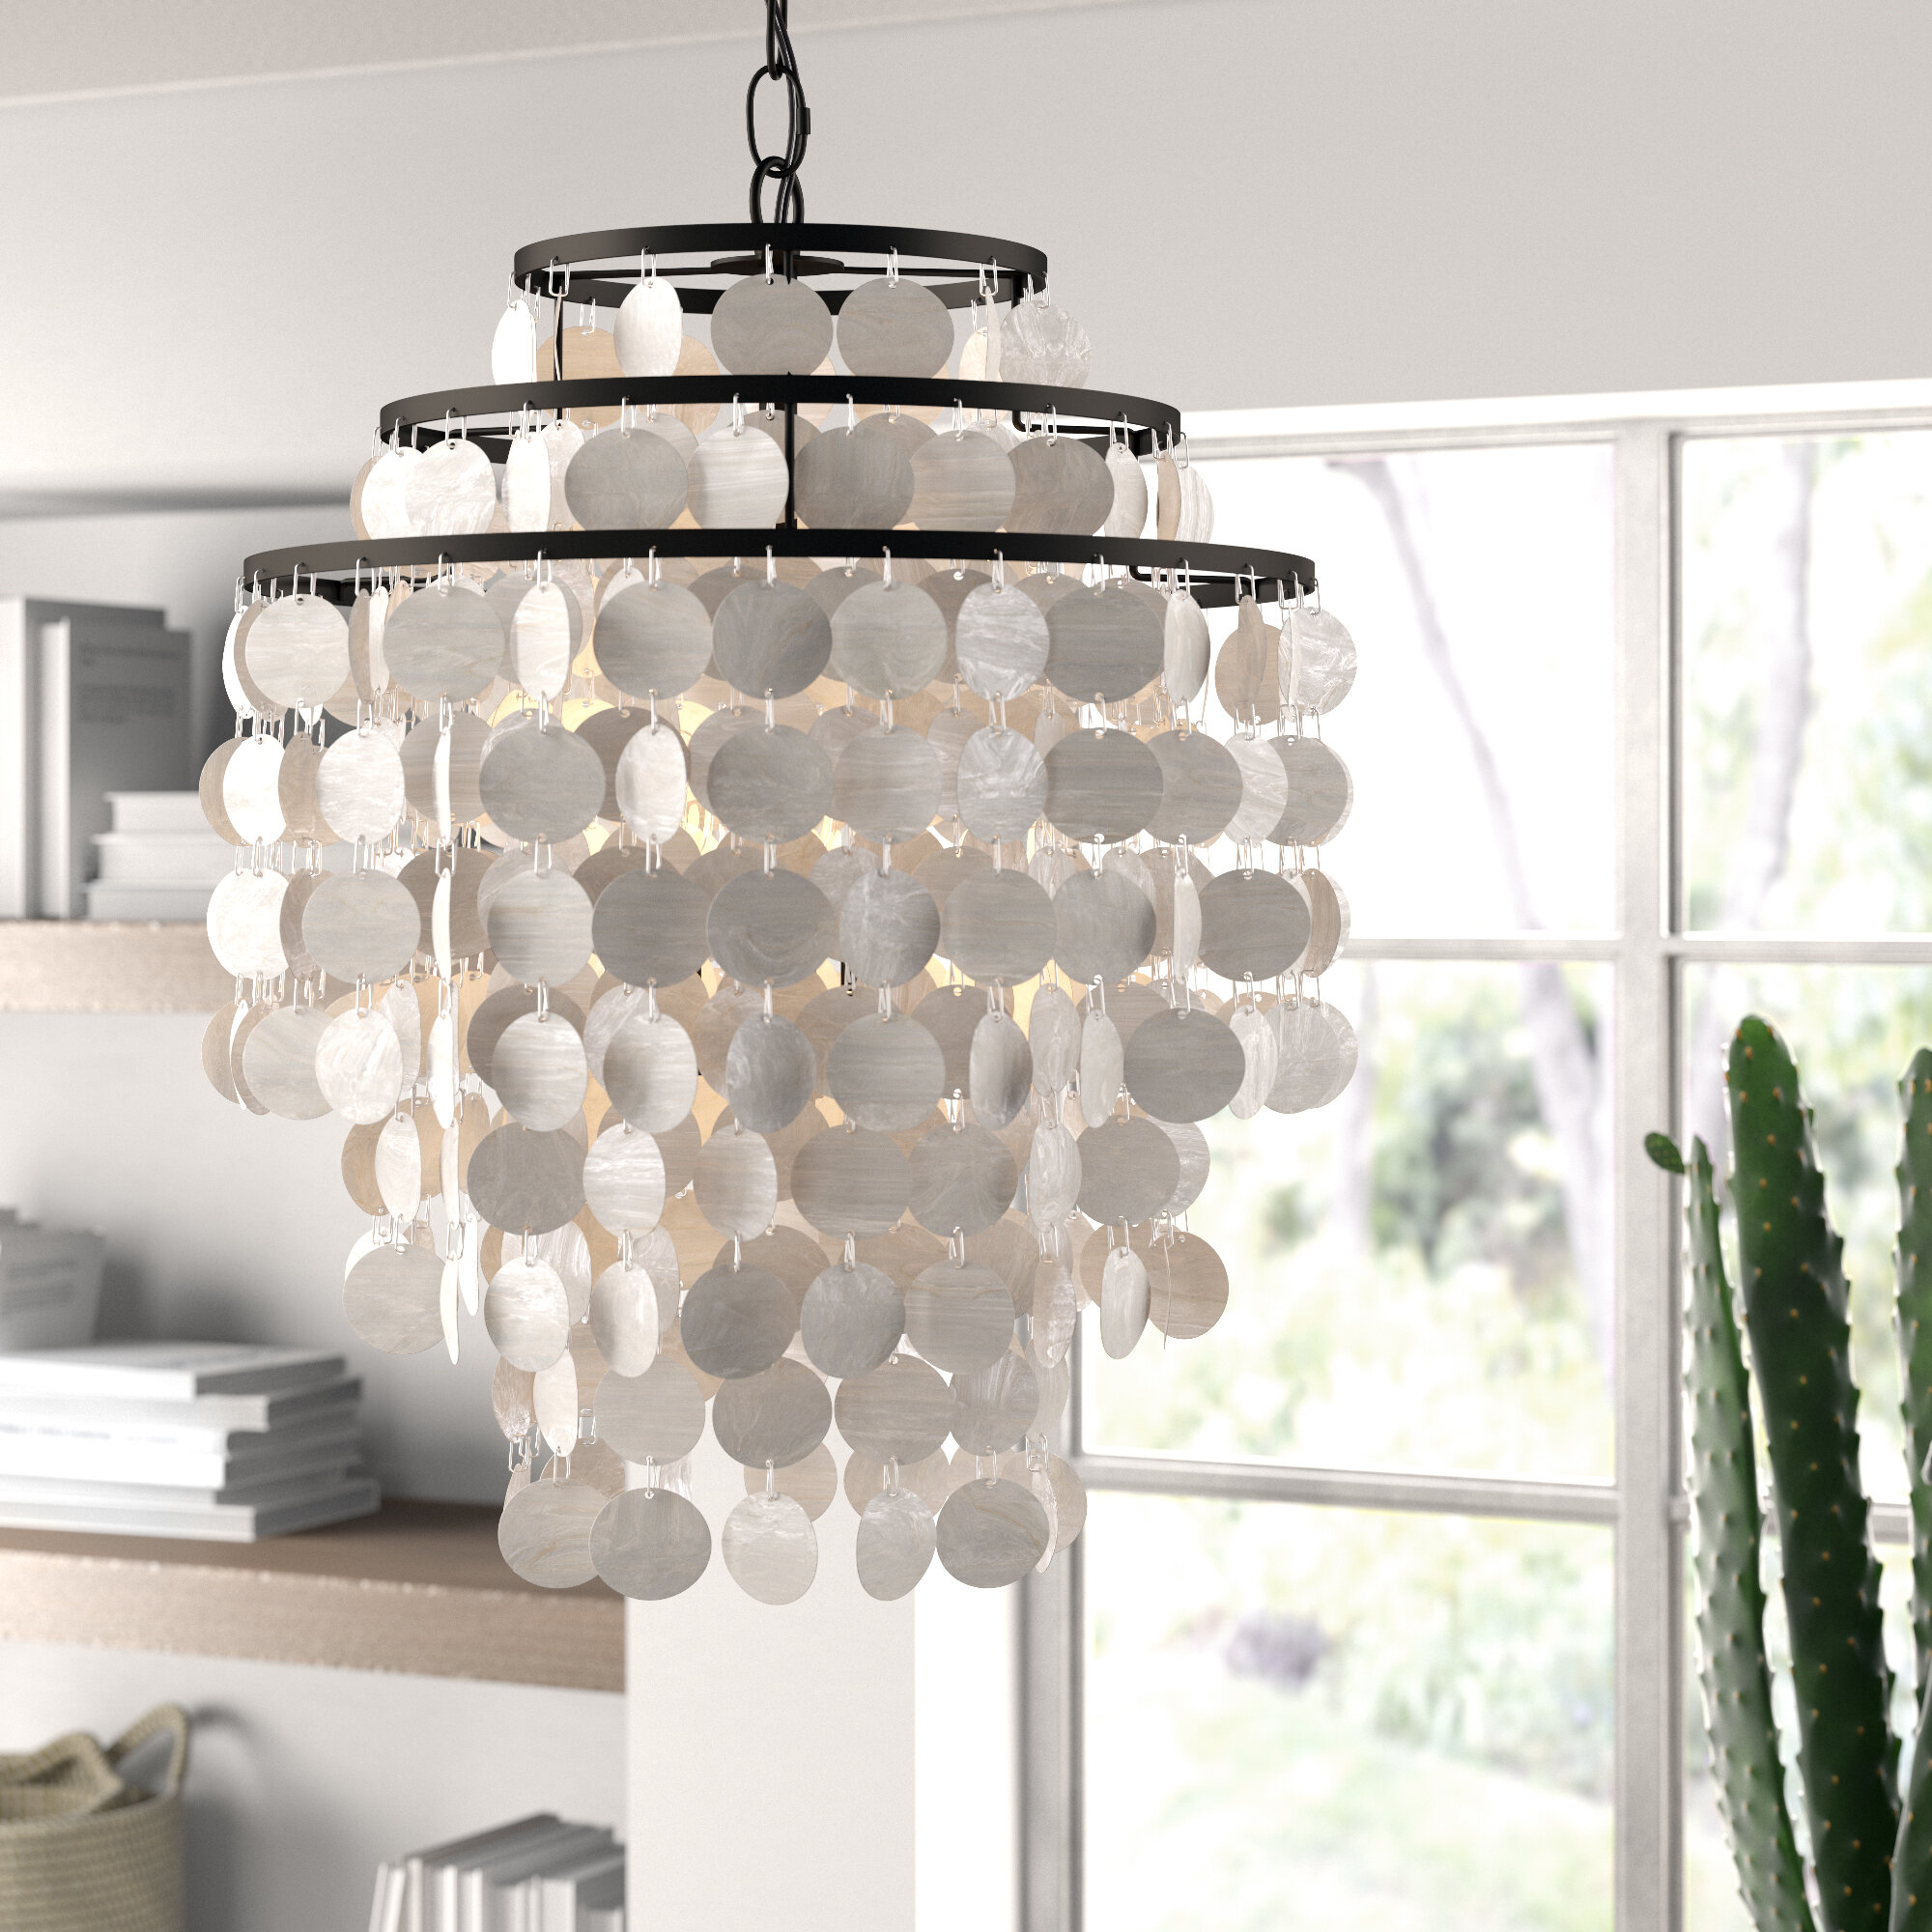 Pabst 3 light novelty chandelier reviews birch lane